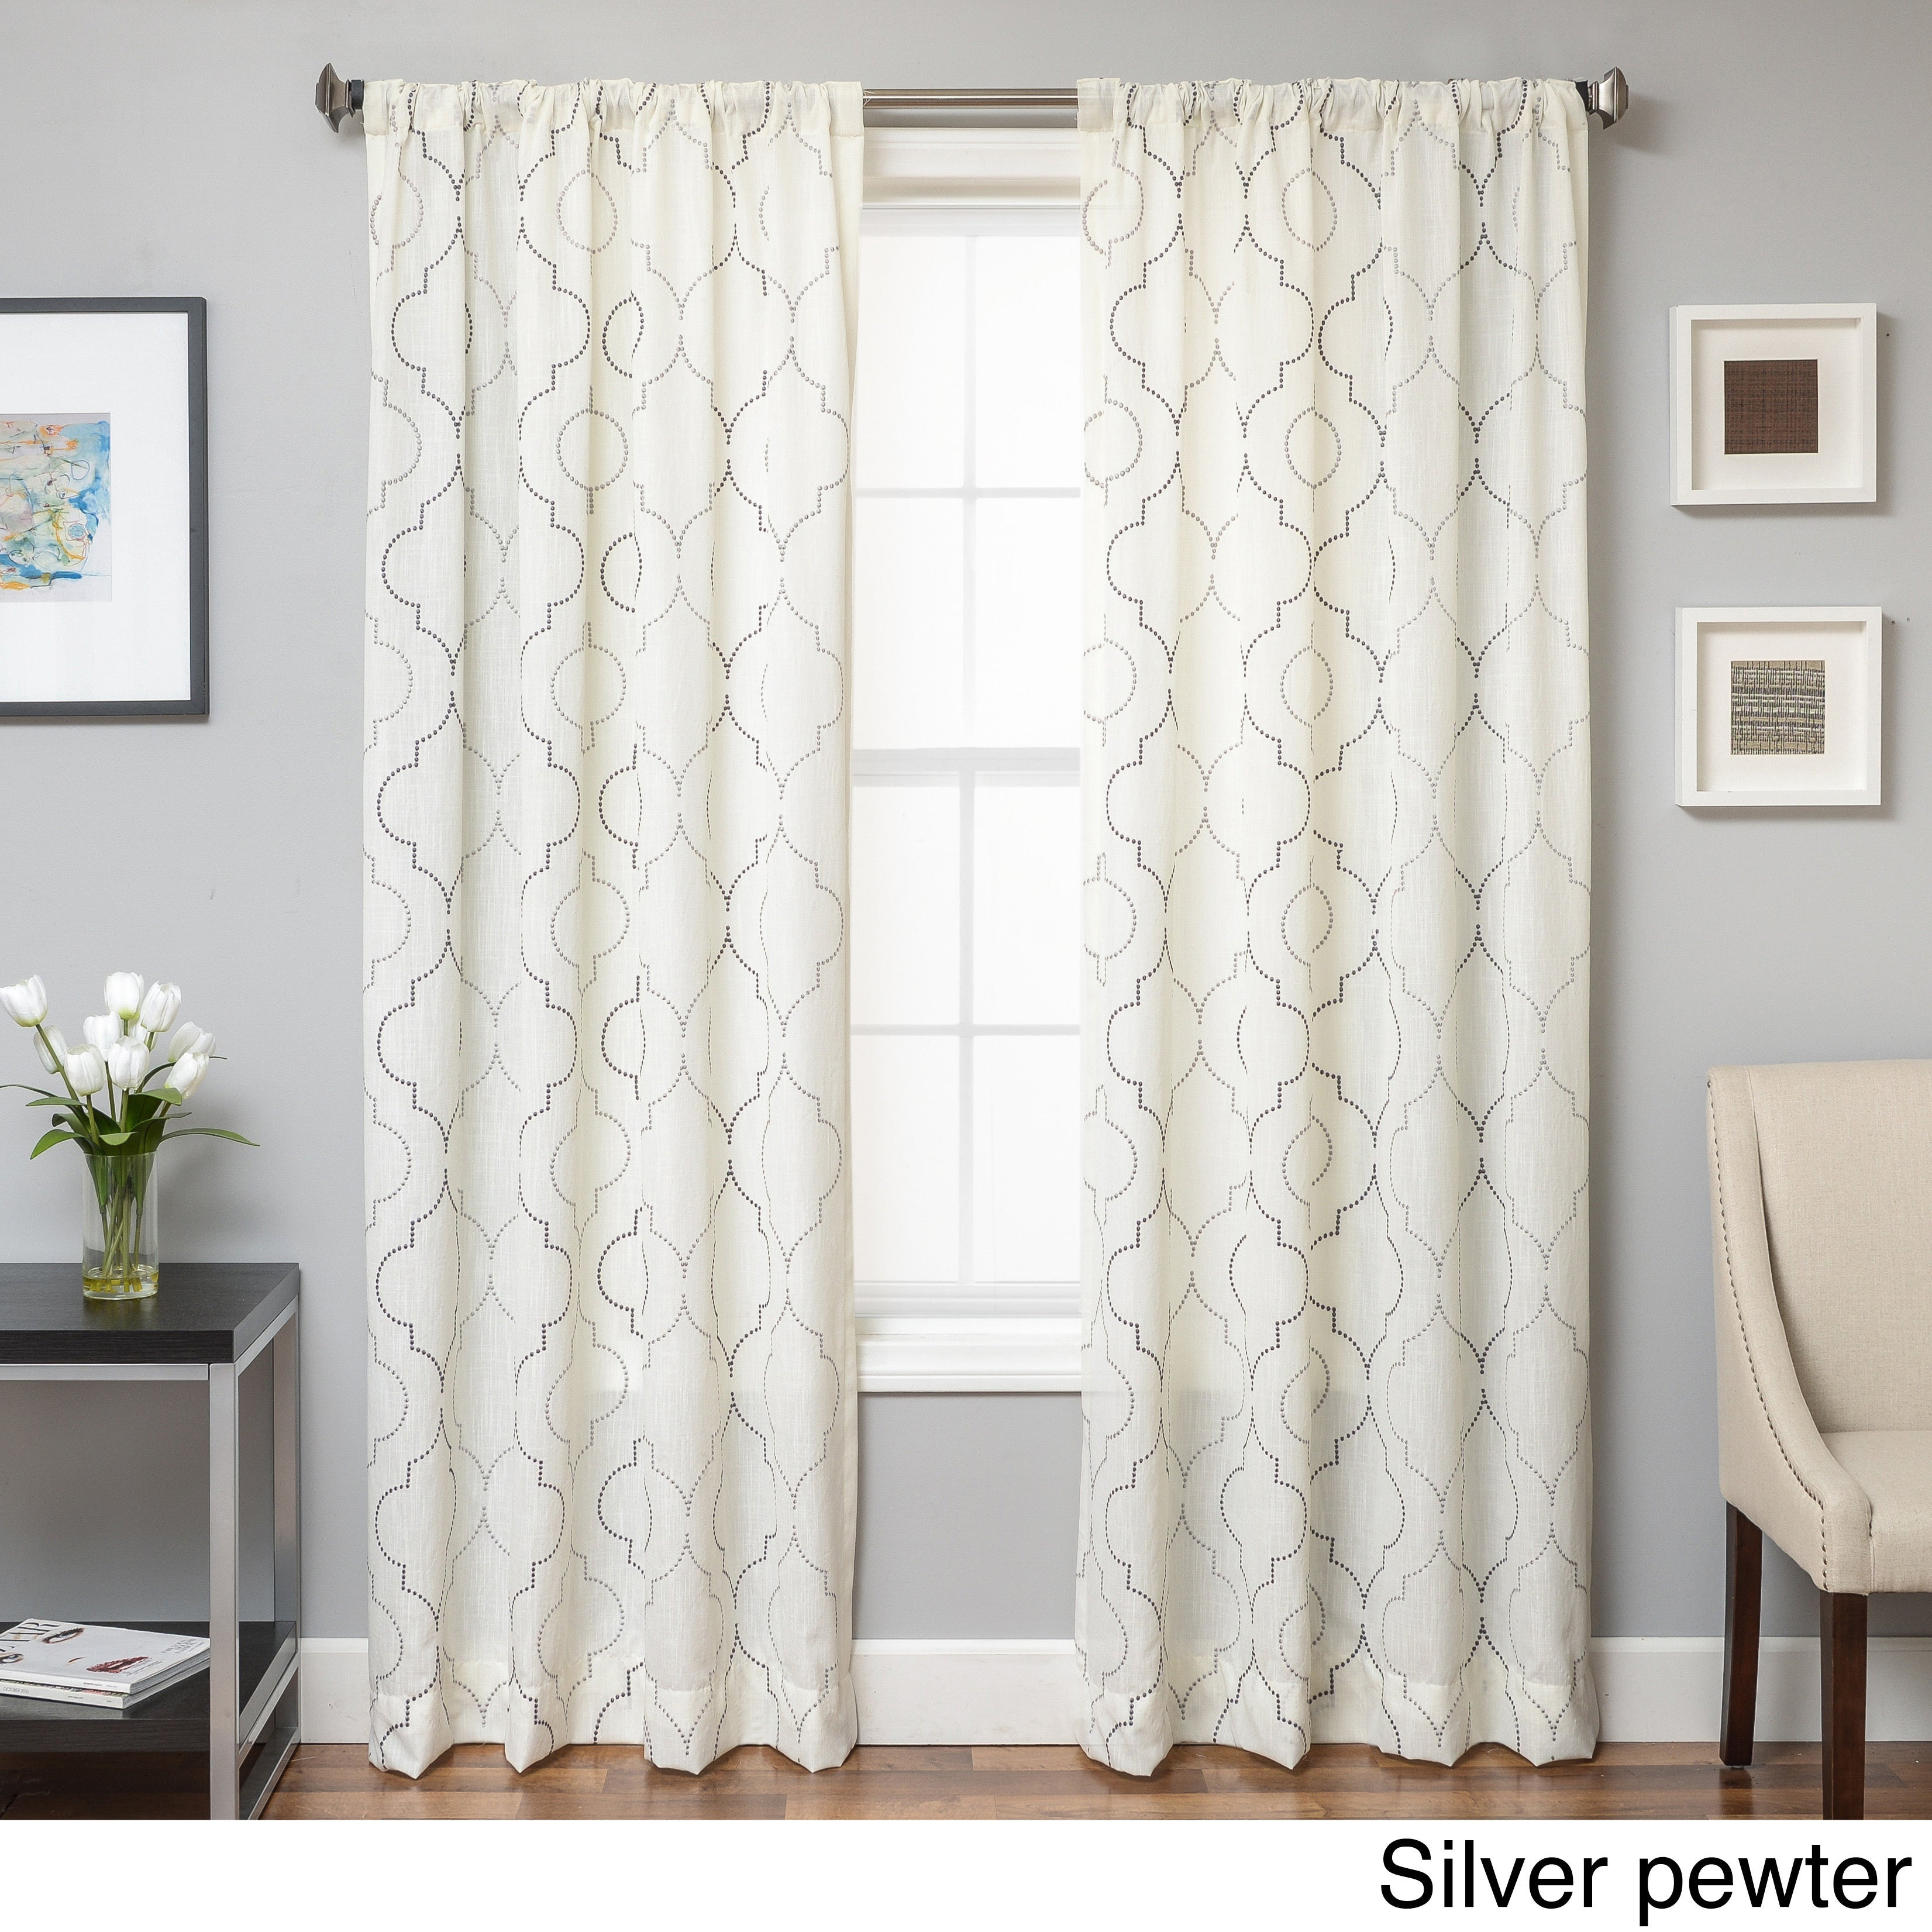 Softline Monza Emboridered Faux Linen Curtain Panel Pertaining To Archaeo Jigsaw Embroidery Linen Blend Curtain Panels (View 13 of 20)